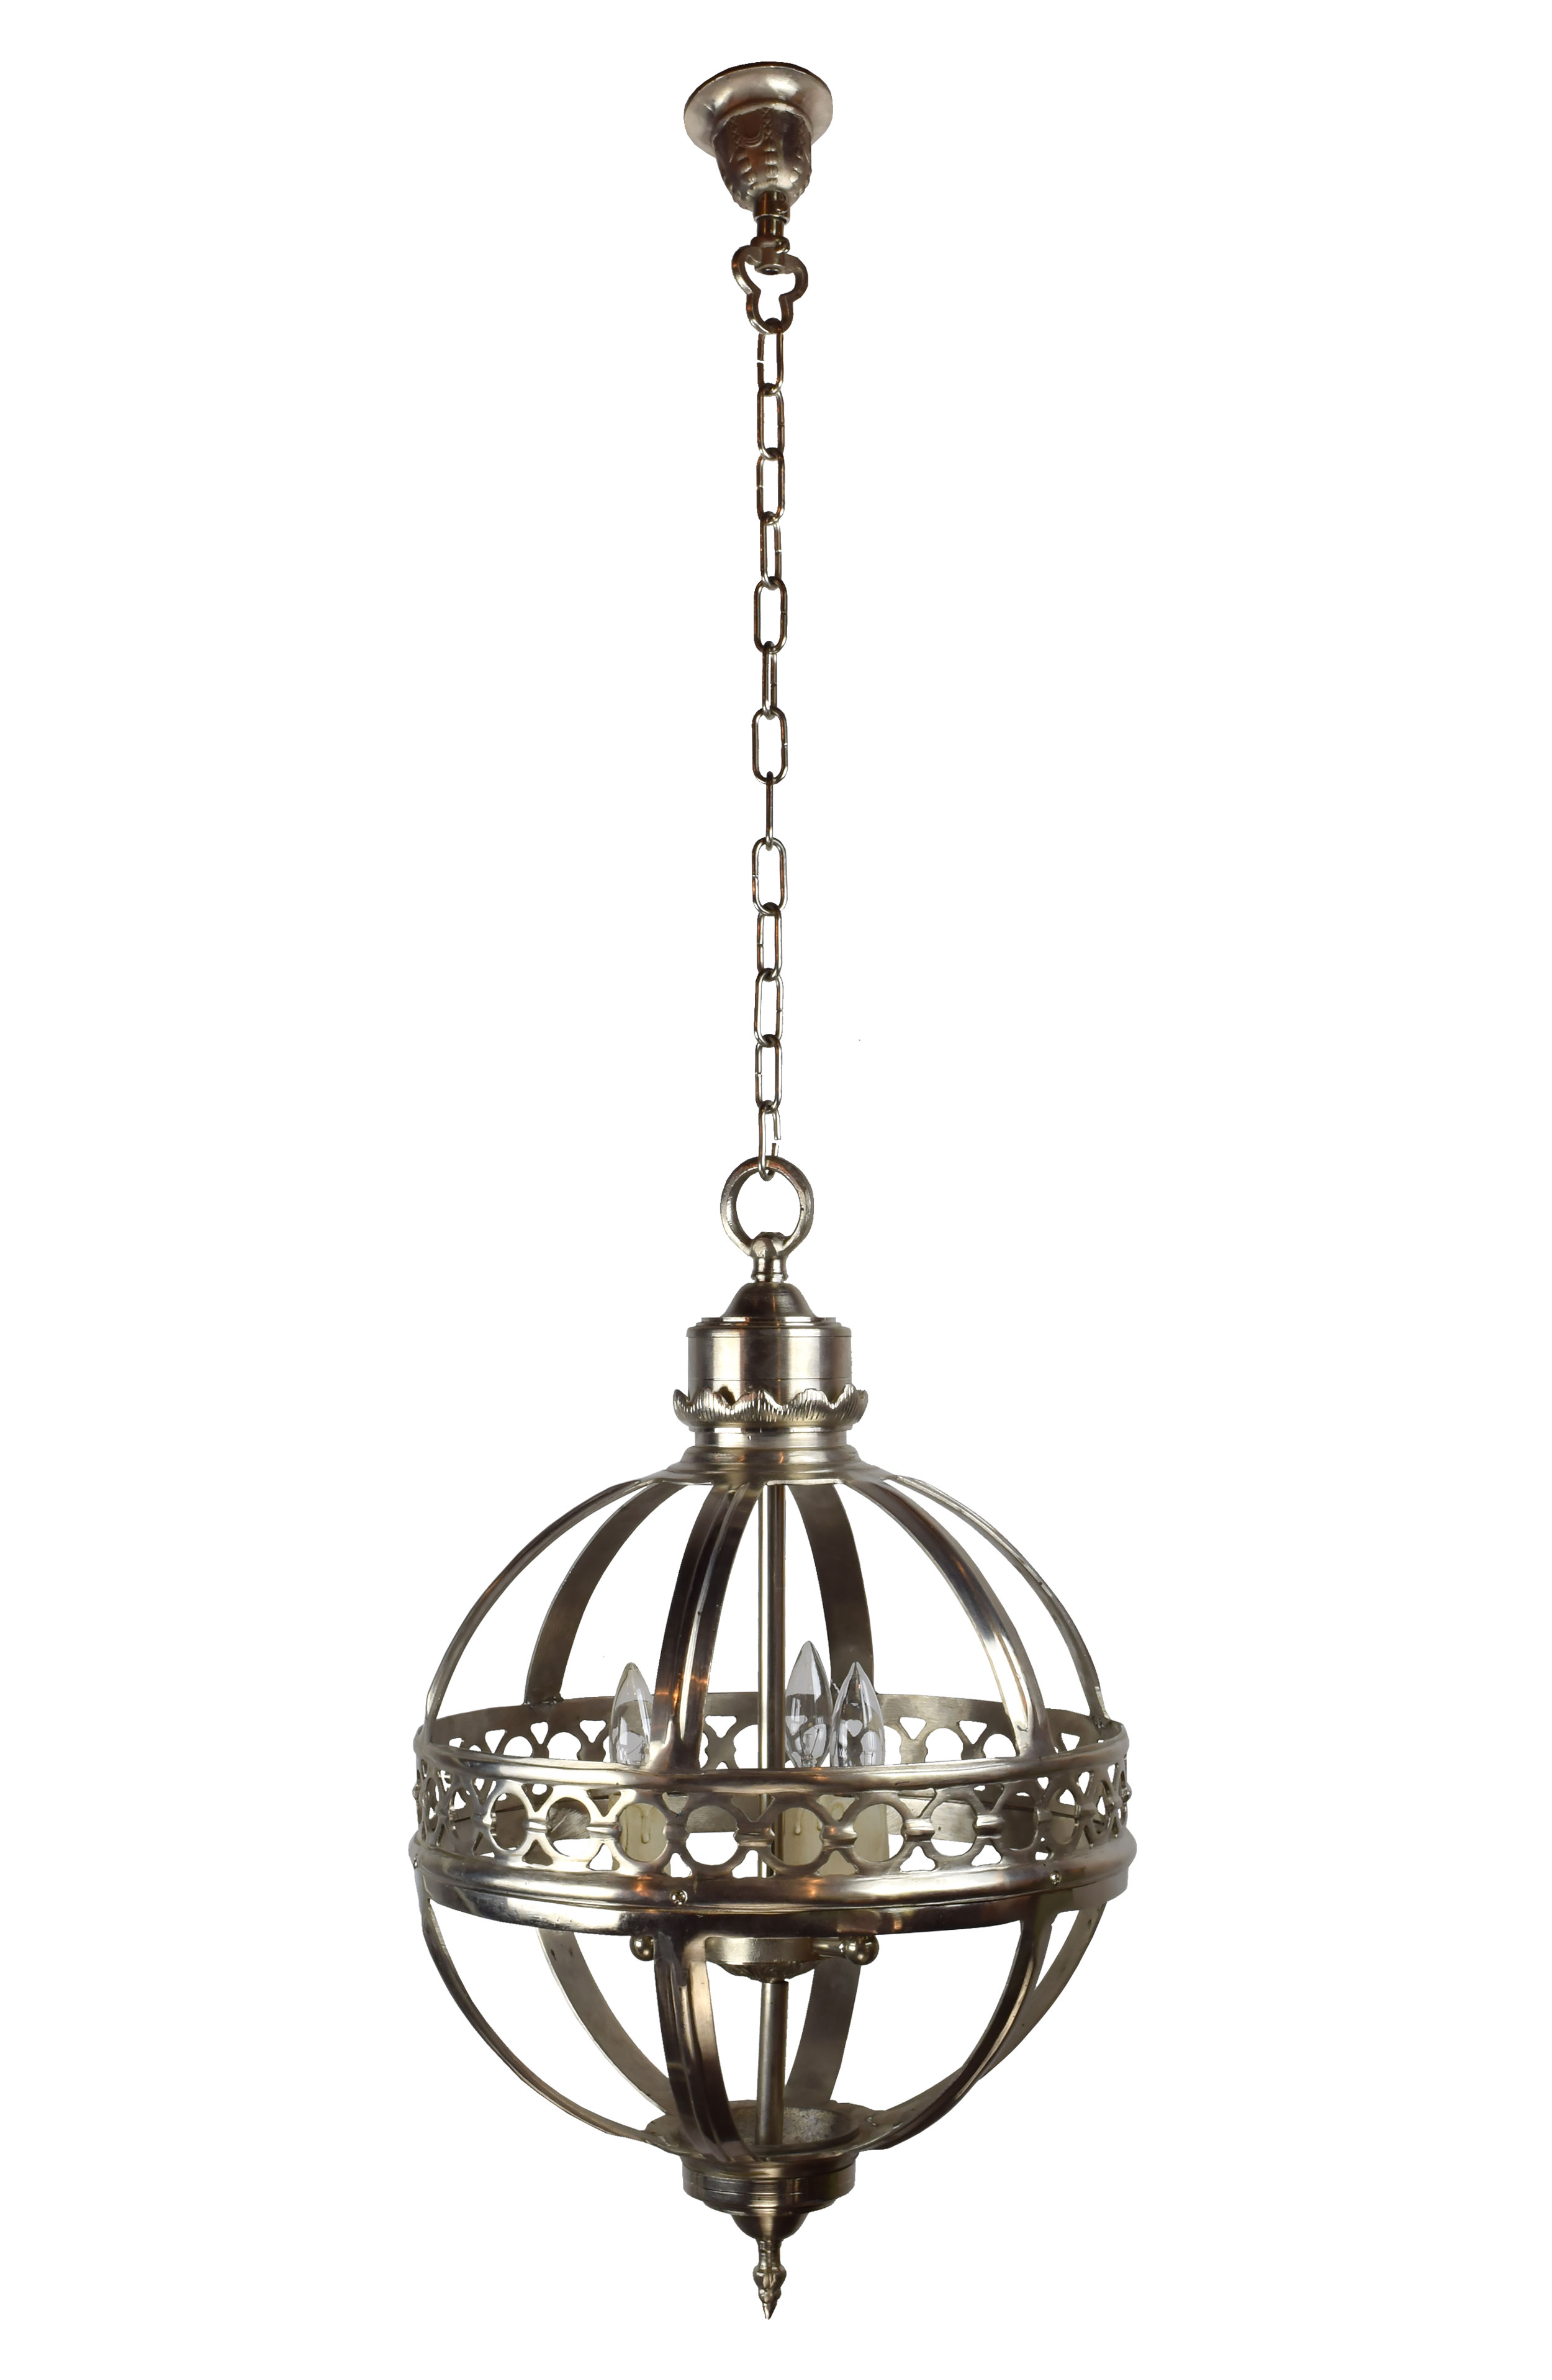 small spherical 3 candle fixture